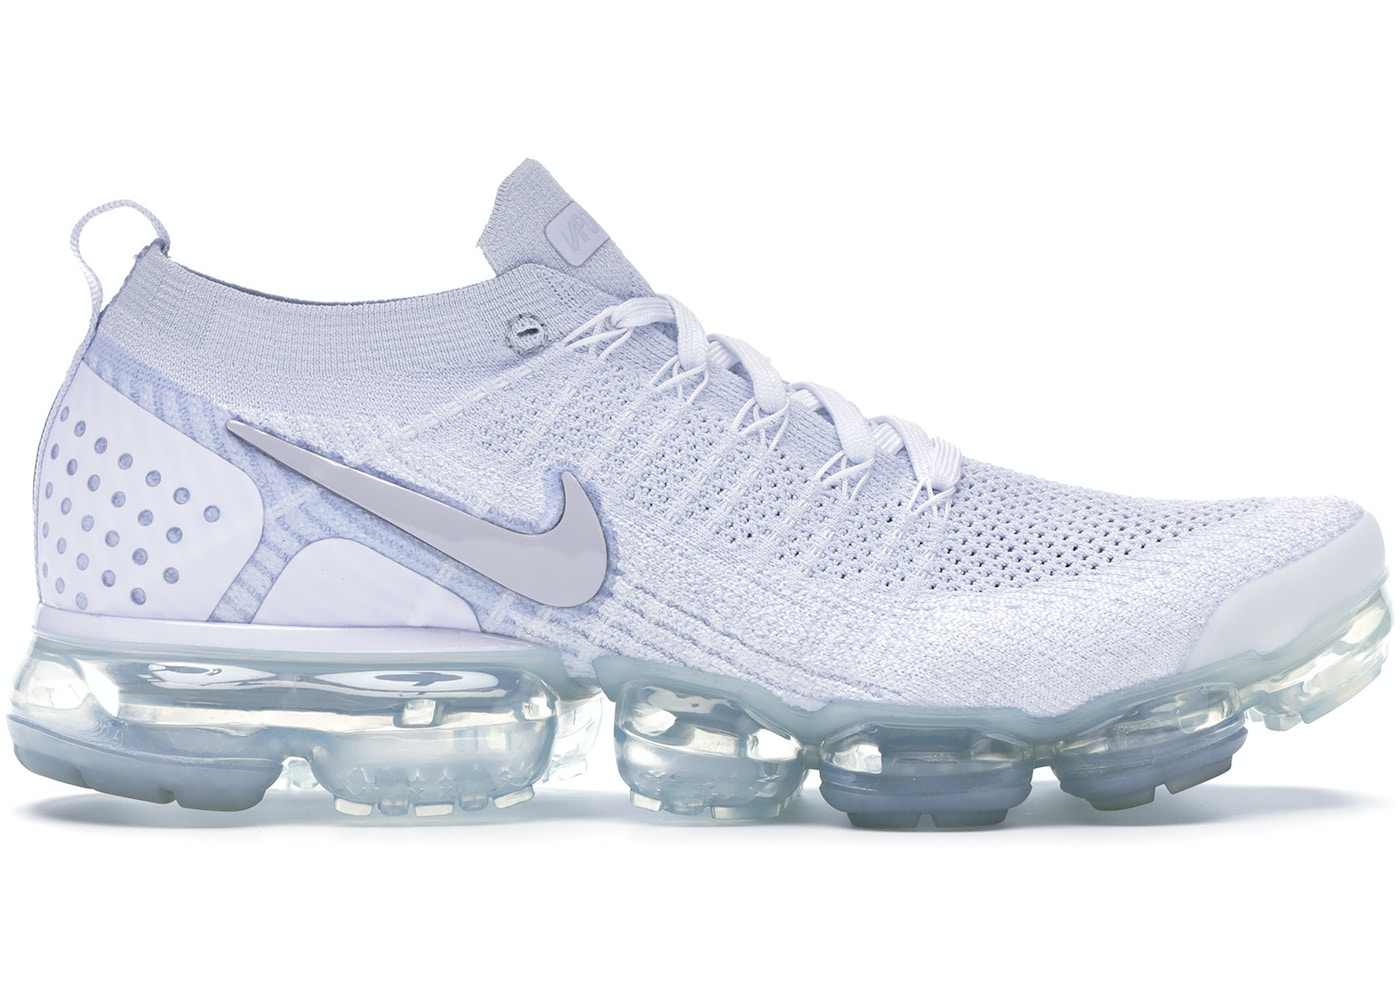 new styles fa5a7 7f2ae Air VaporMax Flyknit 2 White Vast Grey - 942842-105